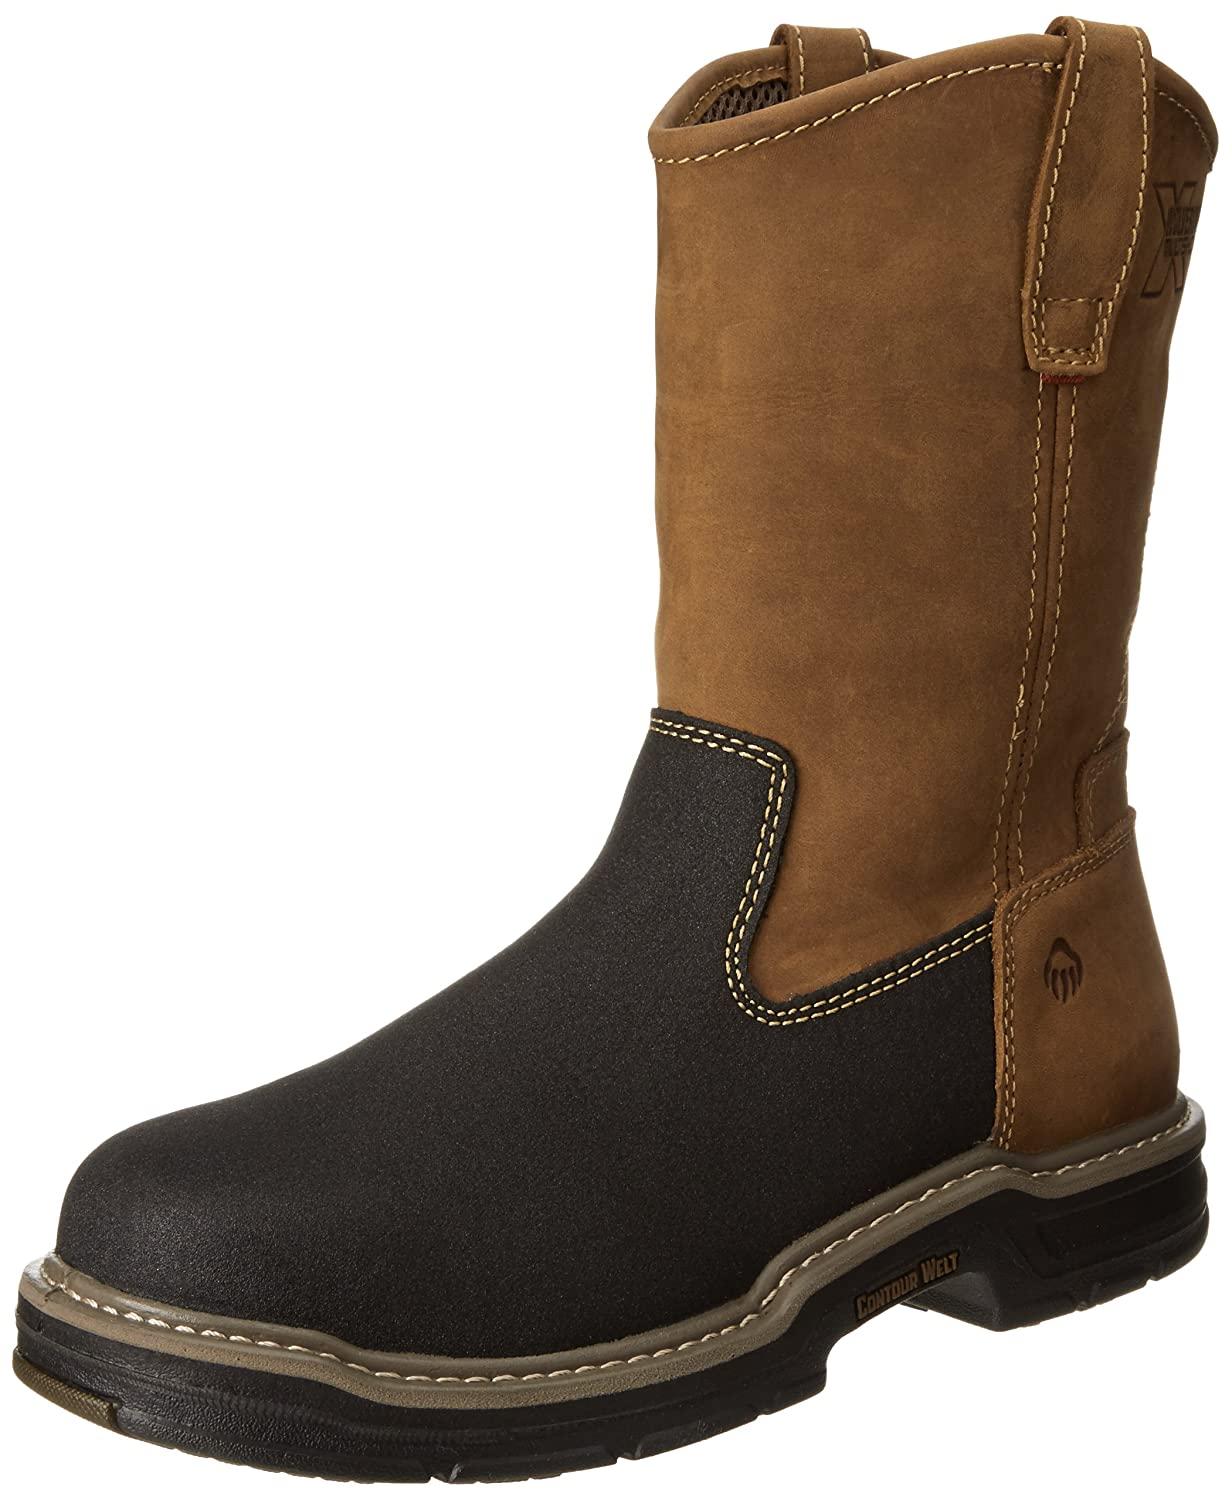 a8f234b2bc6 Wolverine Men's Corsair Wellington Work Boot